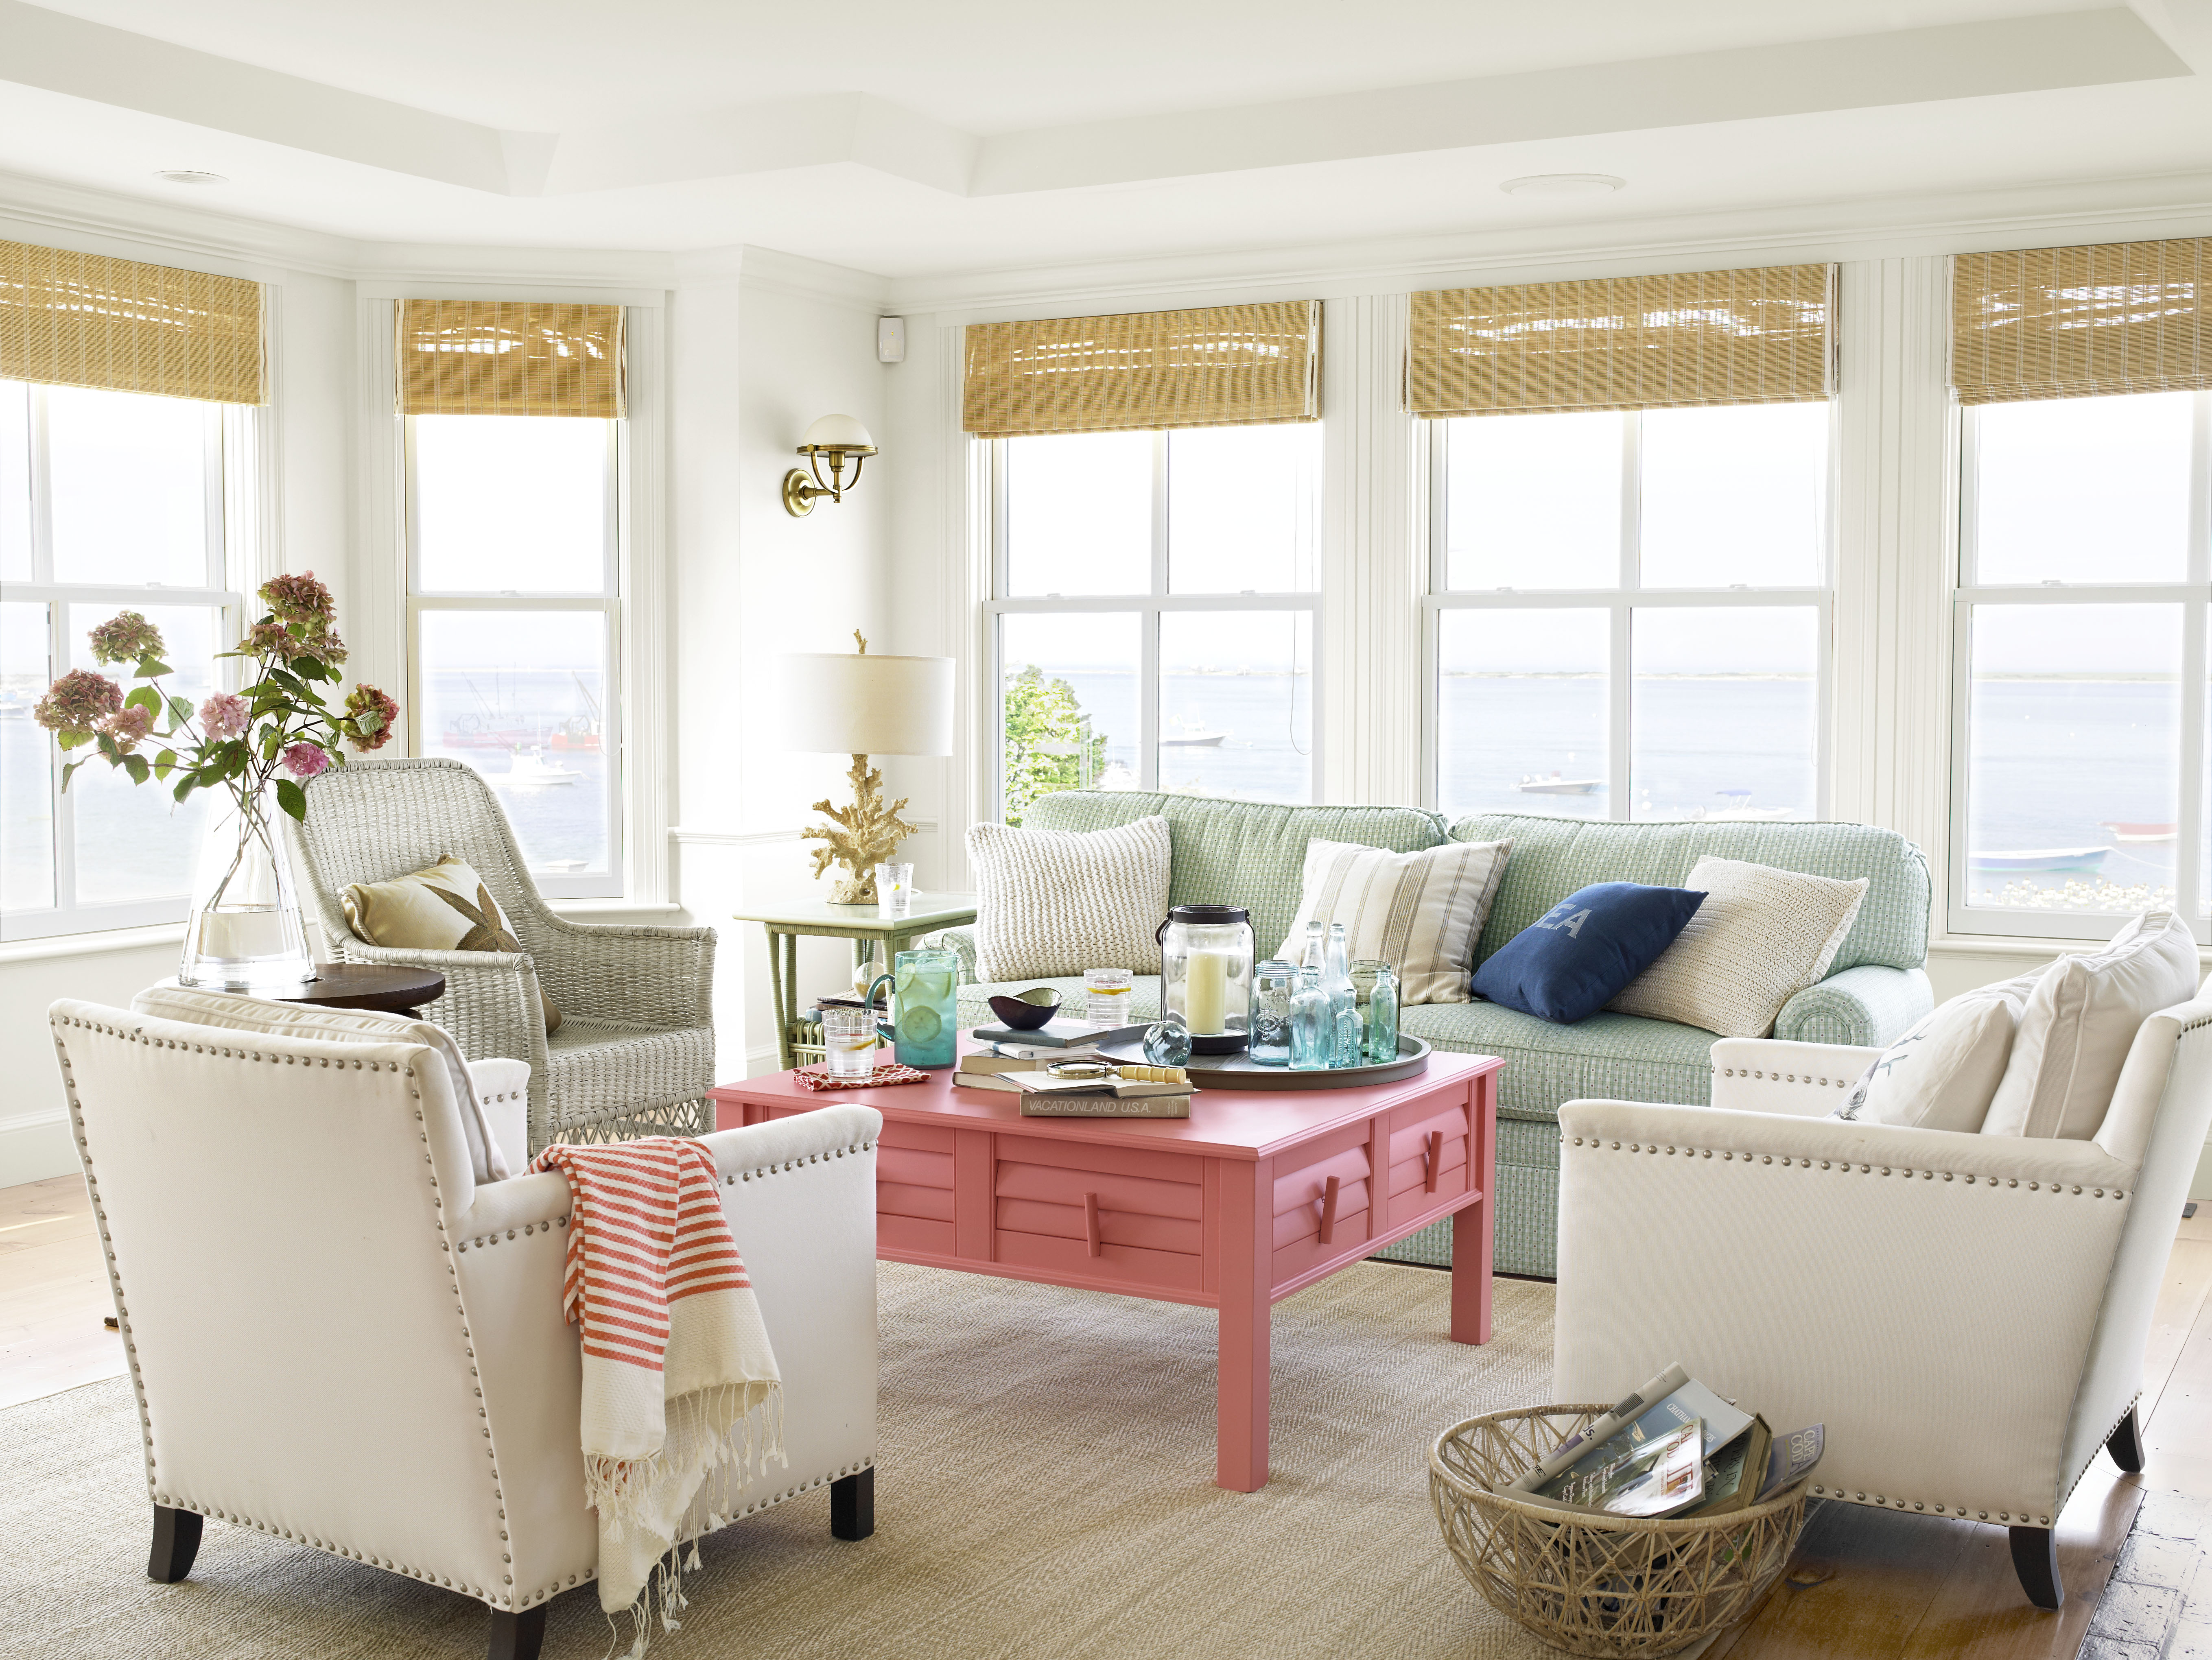 Living Room Beach Decorating Ideas New 40 Beach House Decorating  Beach Home Decor Ideas Inspiration